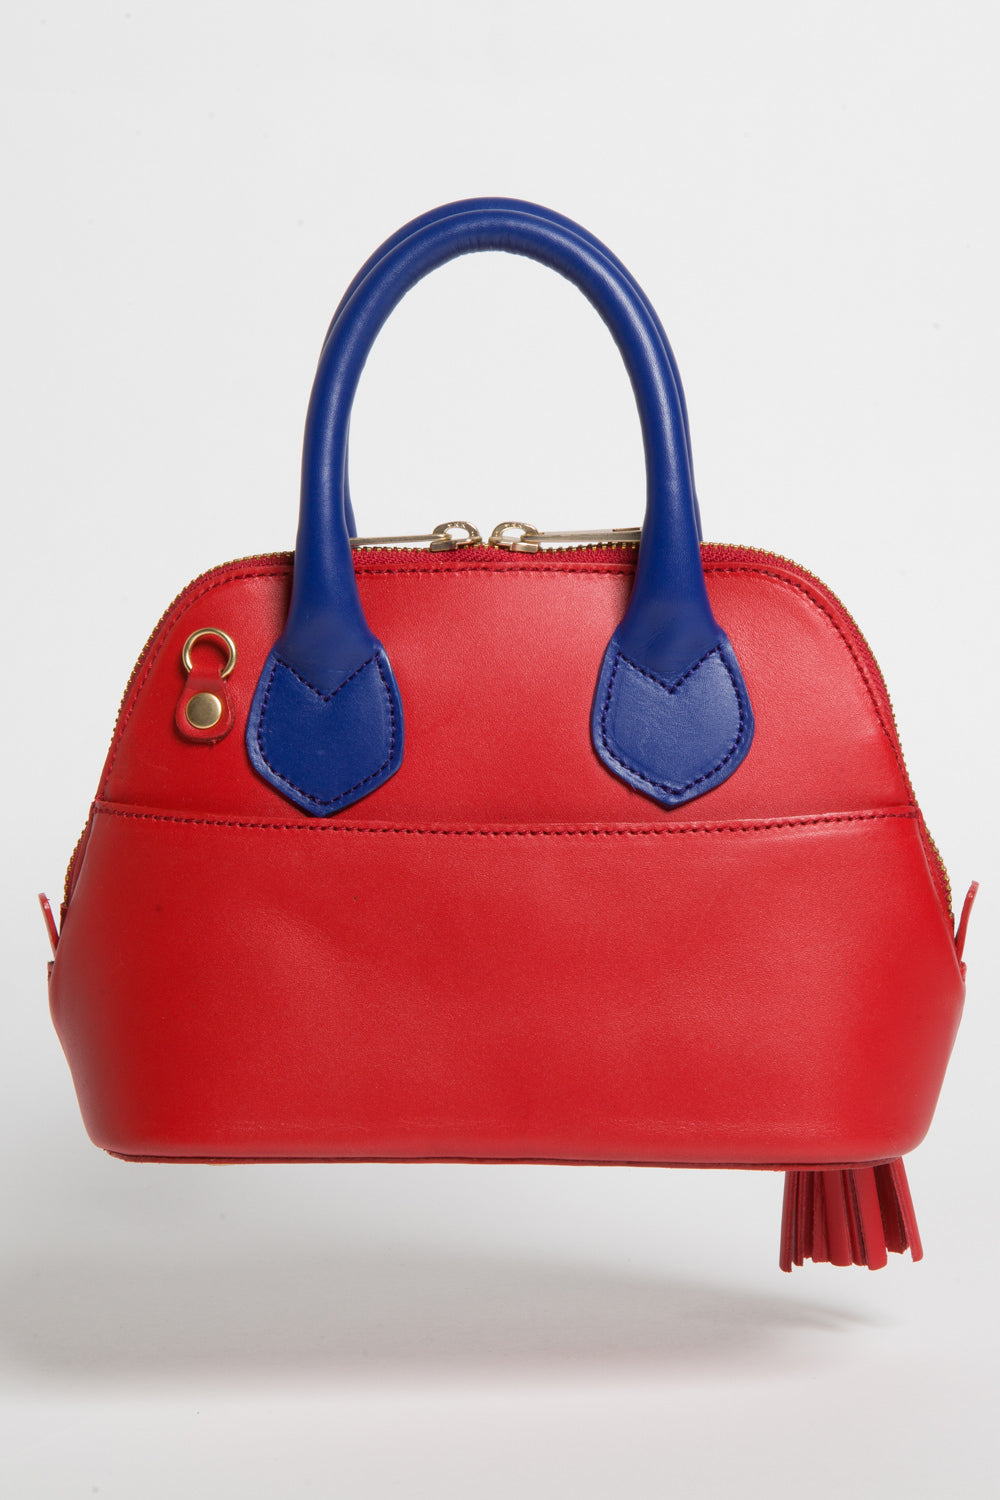 Red & Cobalt Blue Smooth Leather 'Watson Micro' Tote | Mel Boteri | Back Slip Pocket View